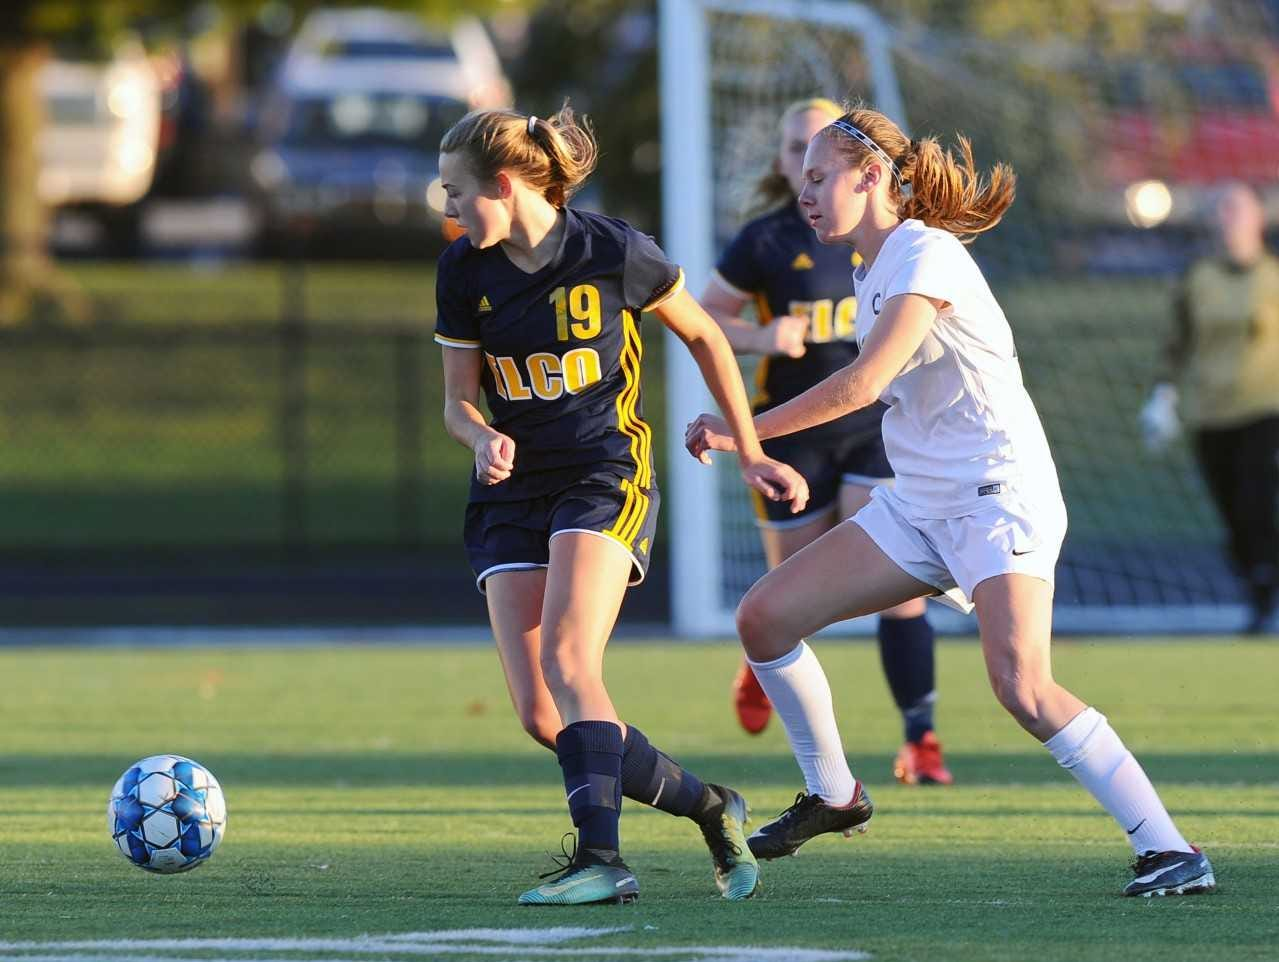 Photo #7 Elco's Natalie Swingholm (19) tries to get to the ball before the CV defender. Photo Jeff Ruppenthal.